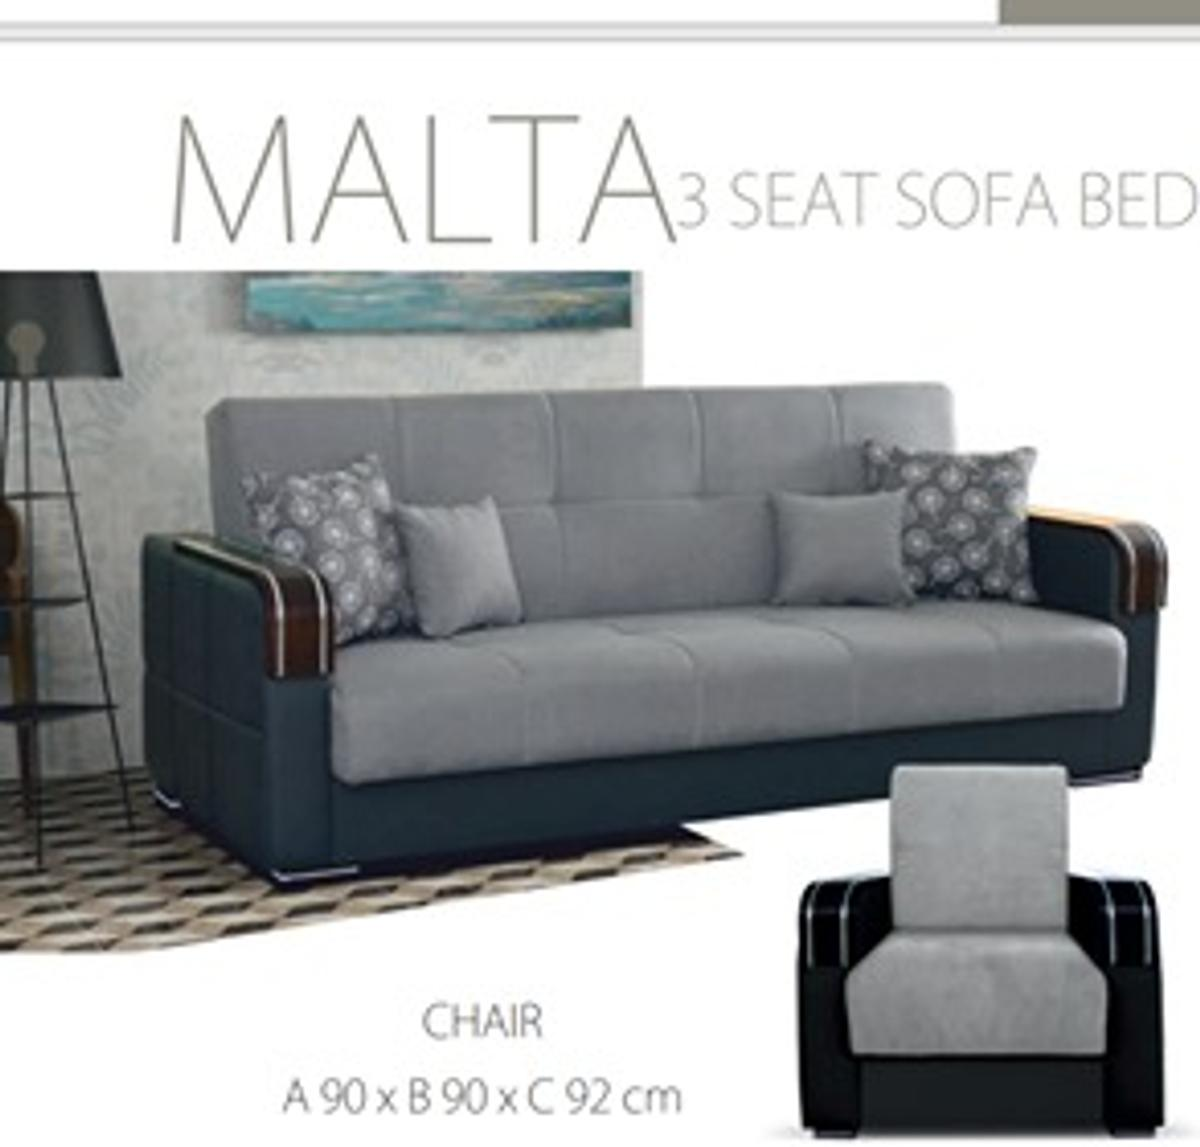 FABRIC MALTA 3 SEATER SOFABED in E1 0AE London for £229.00 ...